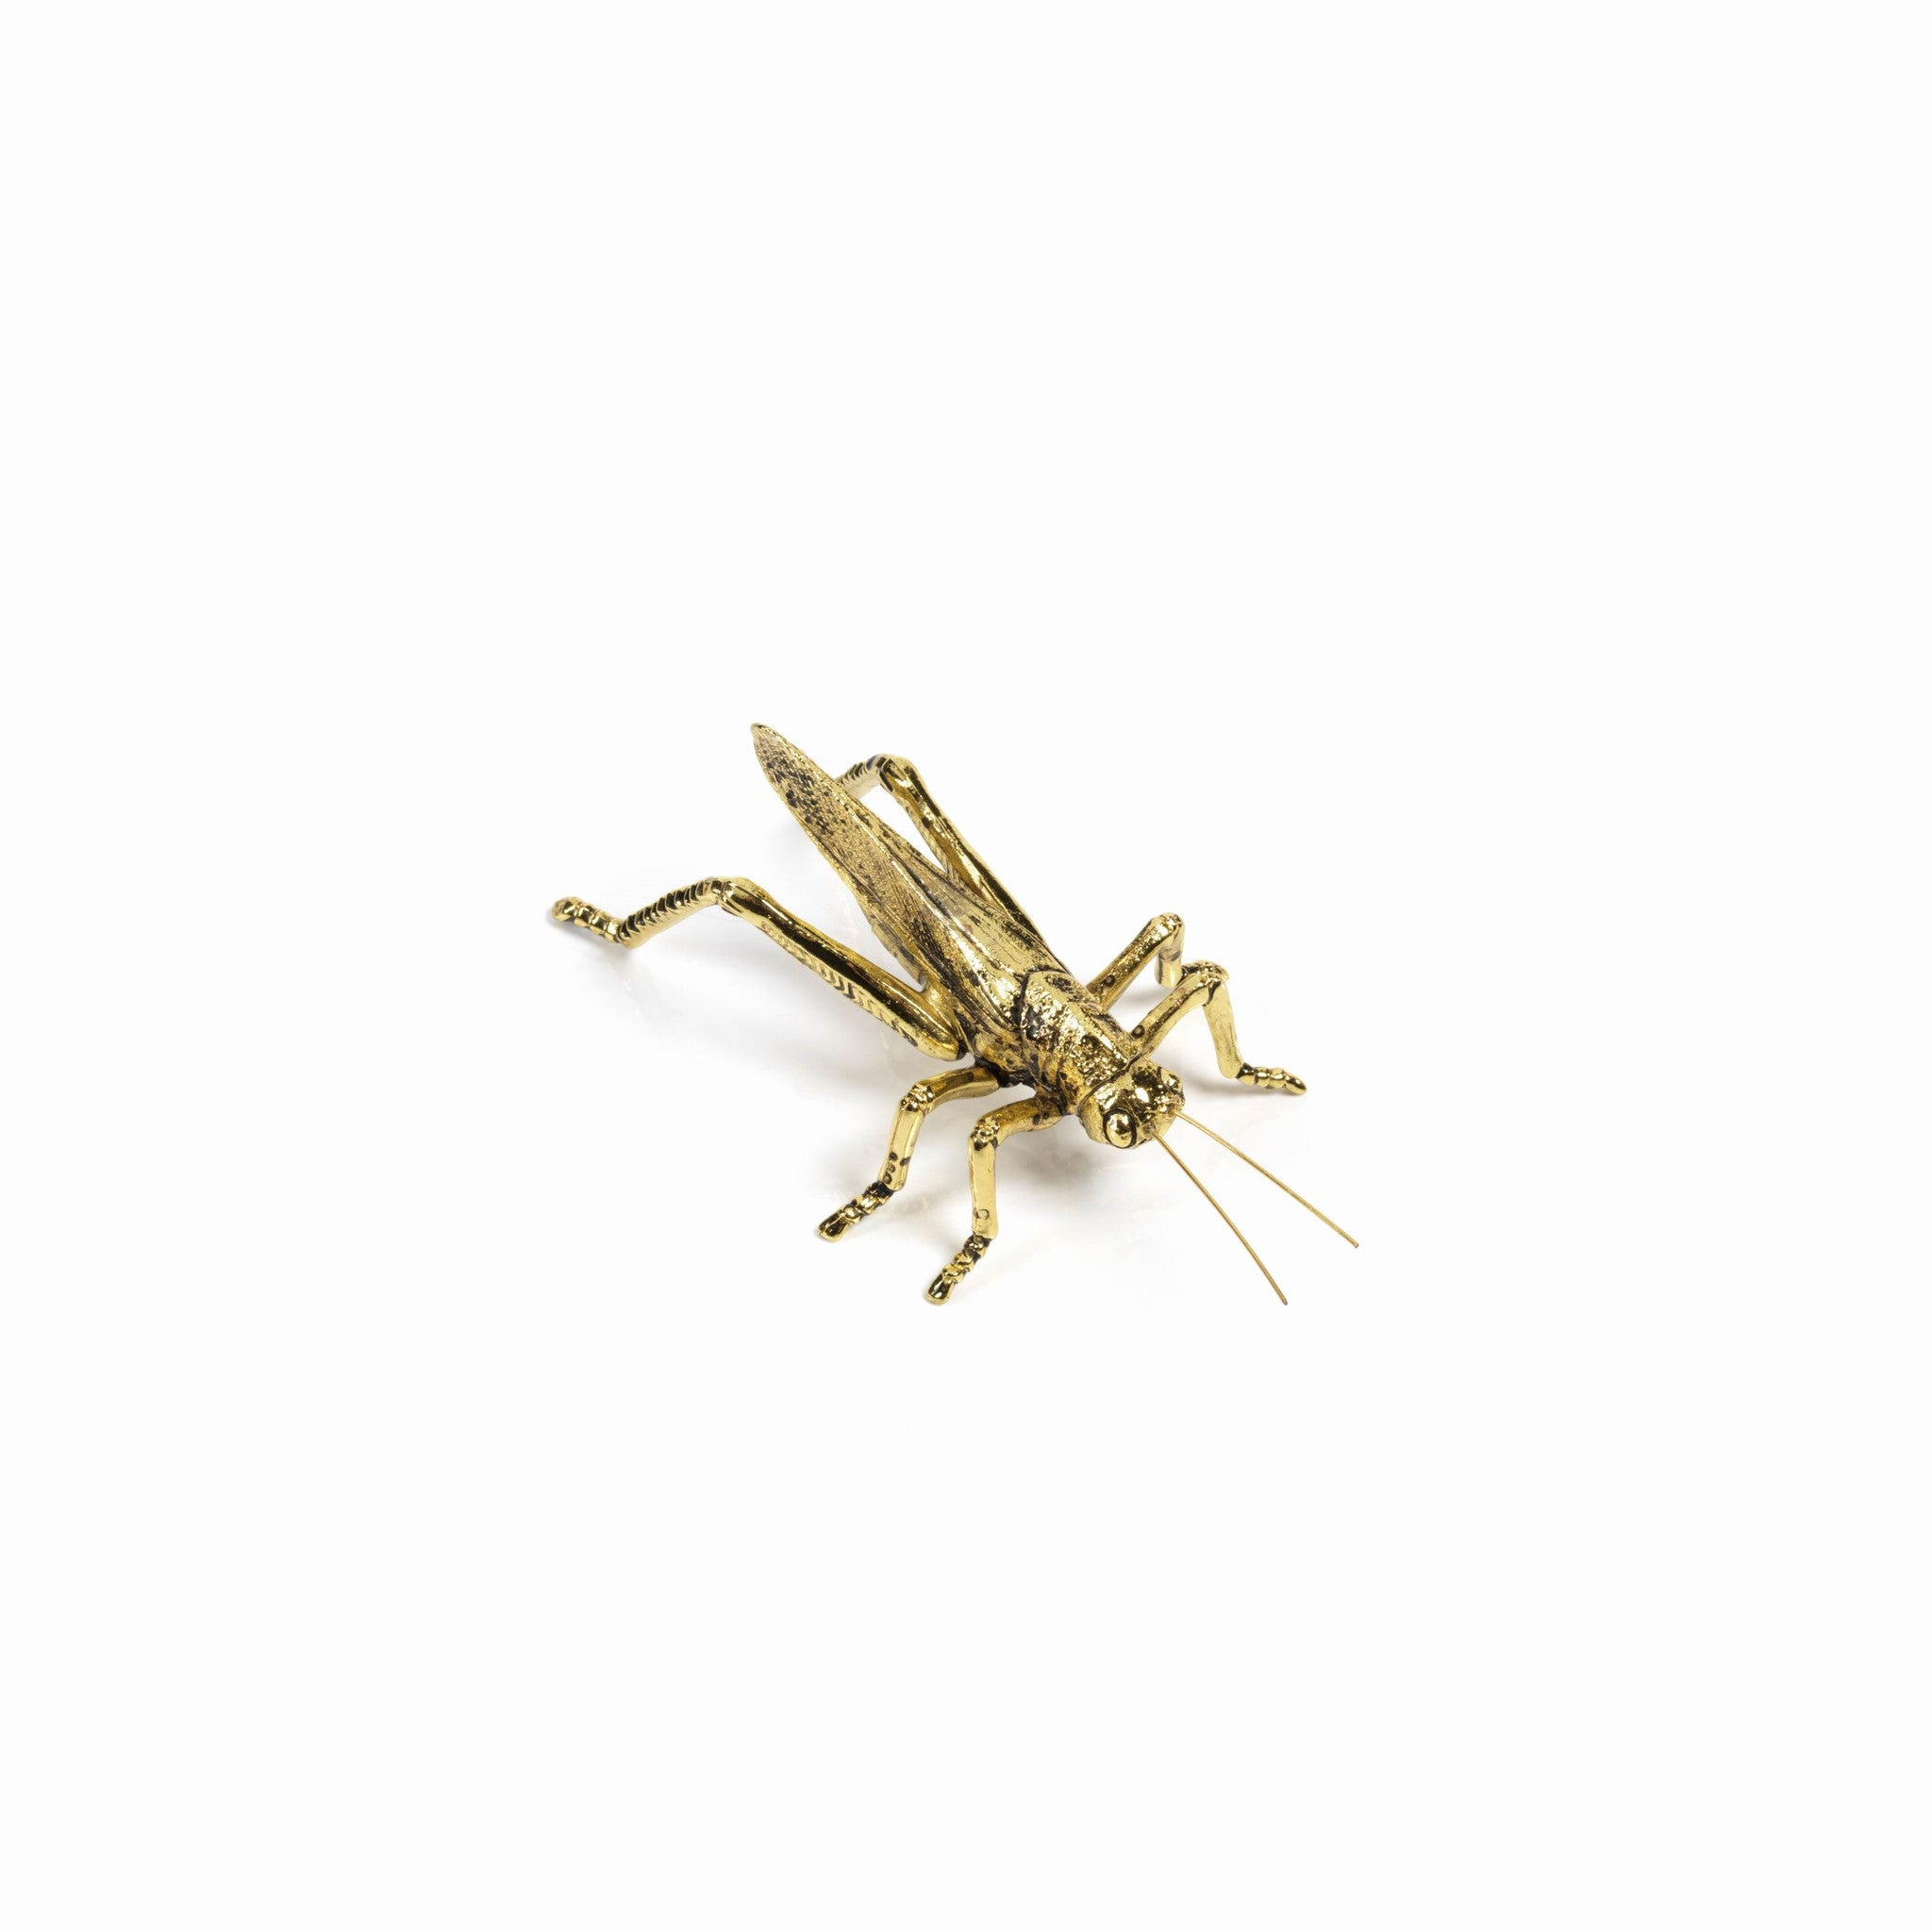 Decorative Gold Grasshopper - CARLYLE AVENUE